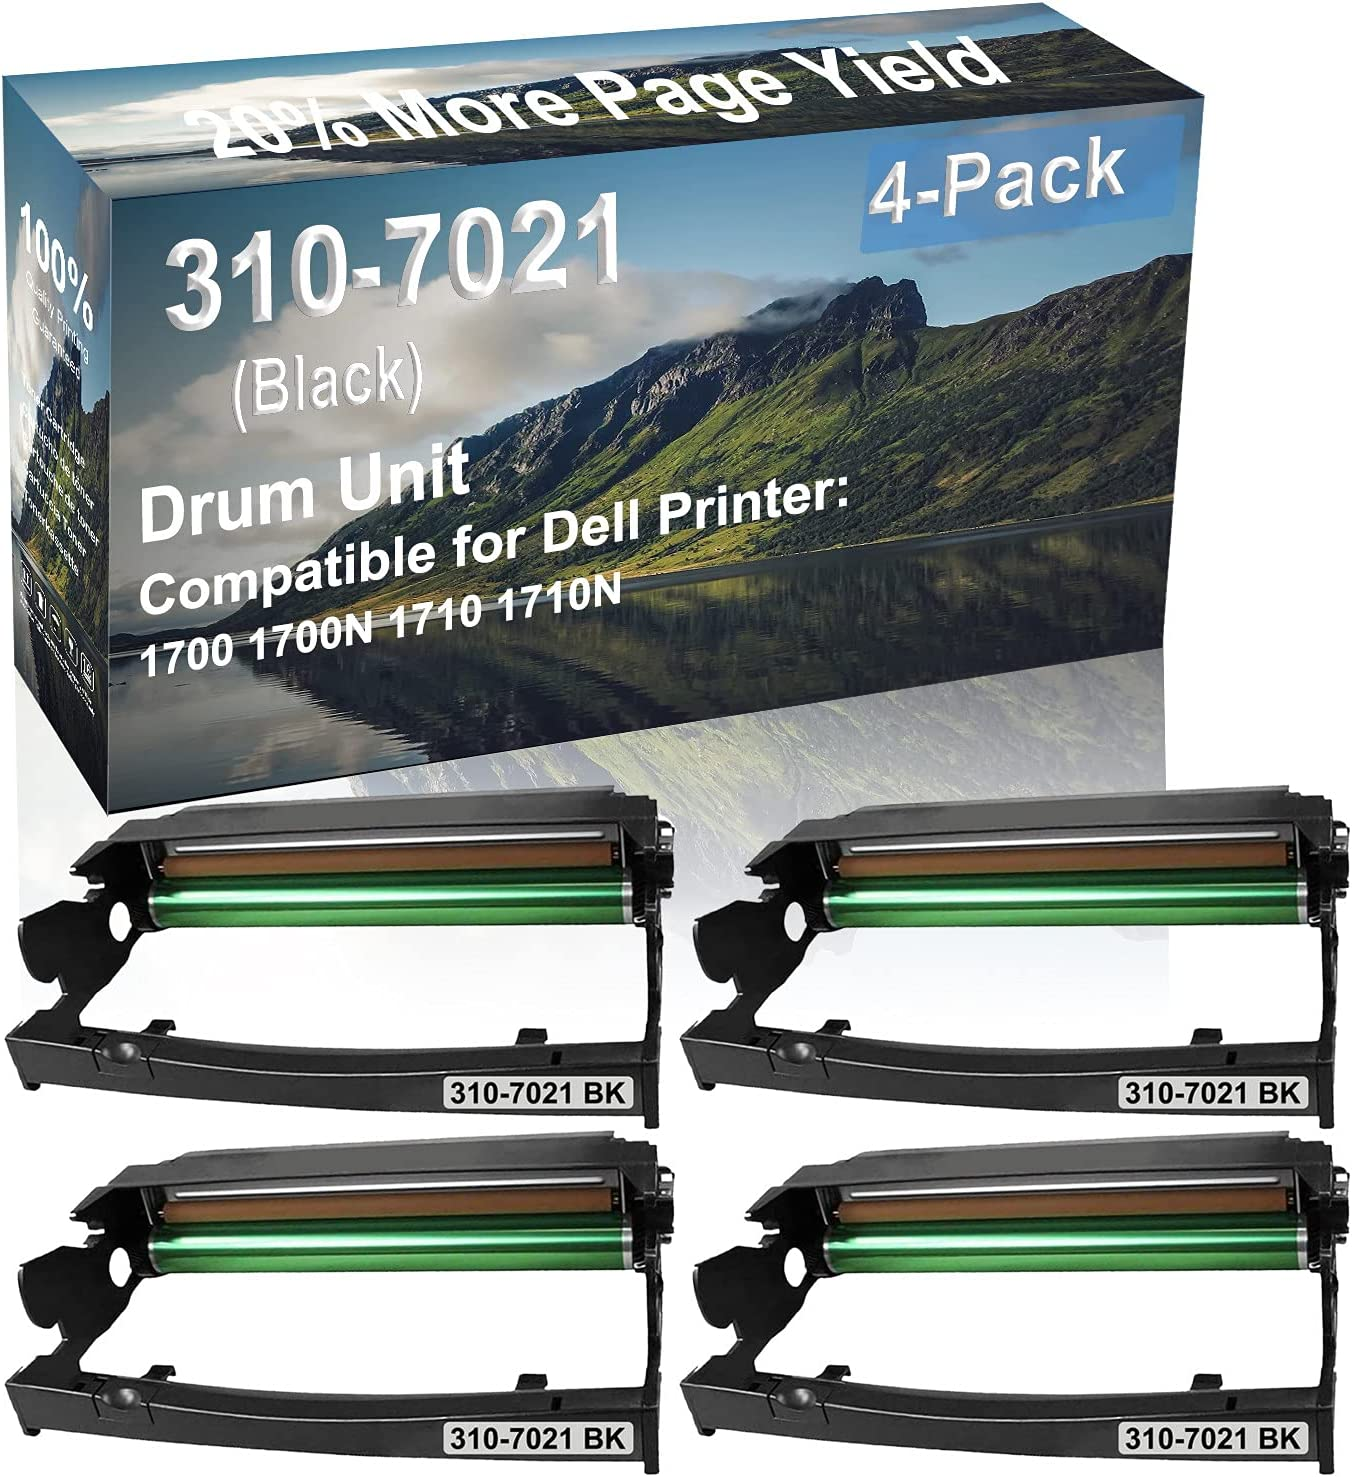 4-Pack Compatible Drum Unit (Black) Replacement for Dell 310-7021 Drum Kit use for Dell 1700 1700N 1710 1710N Printer